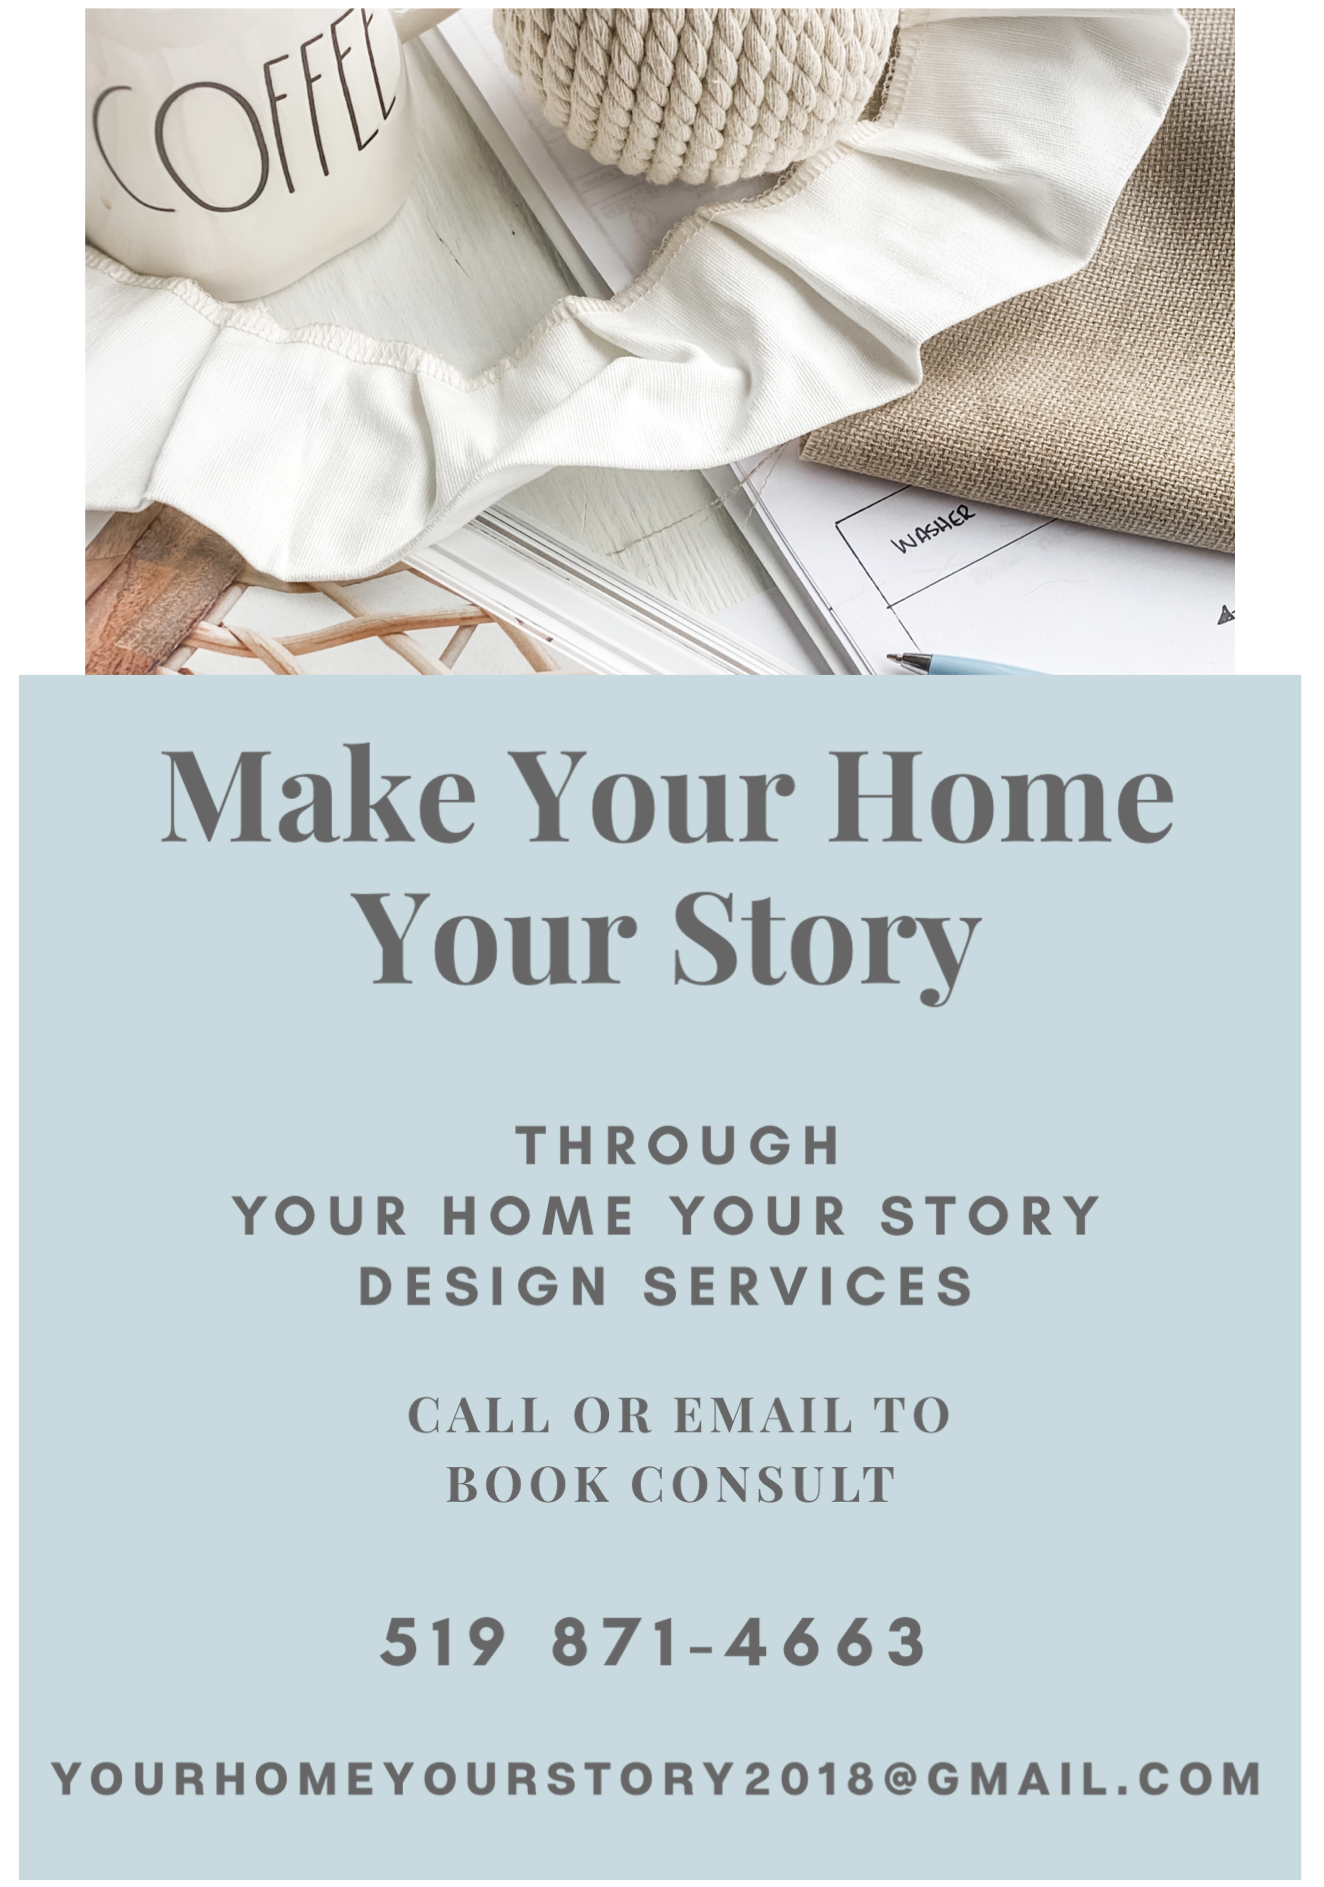 Your Home Your Story Design Services Flyer